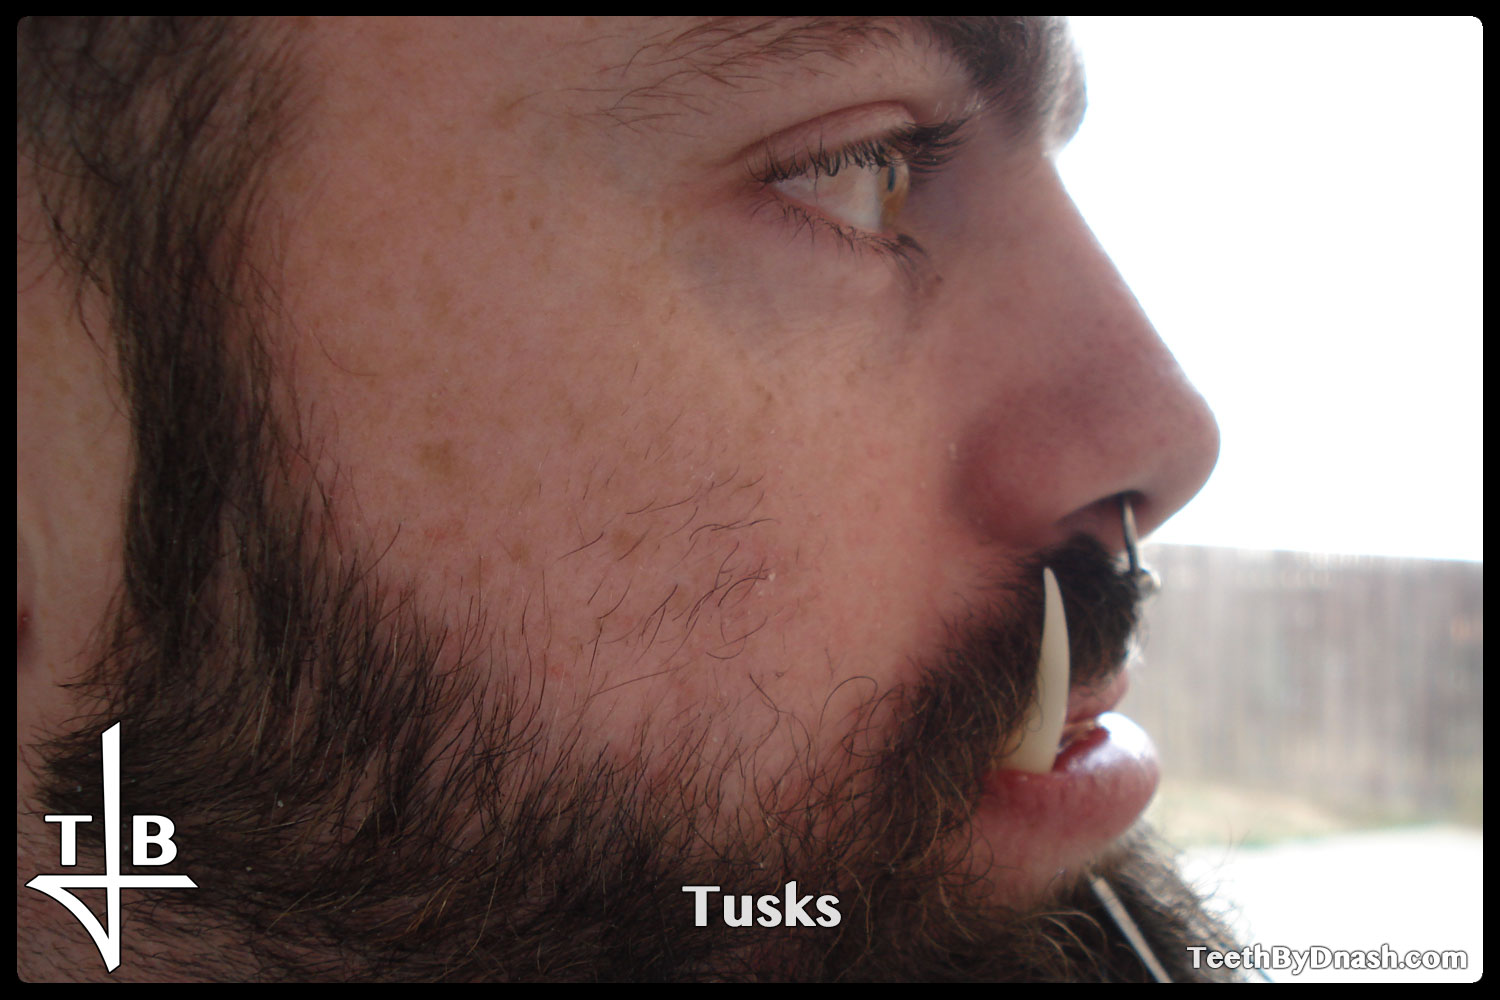 http://tusks-other_tooth_fx-teeth_by_dnash-08